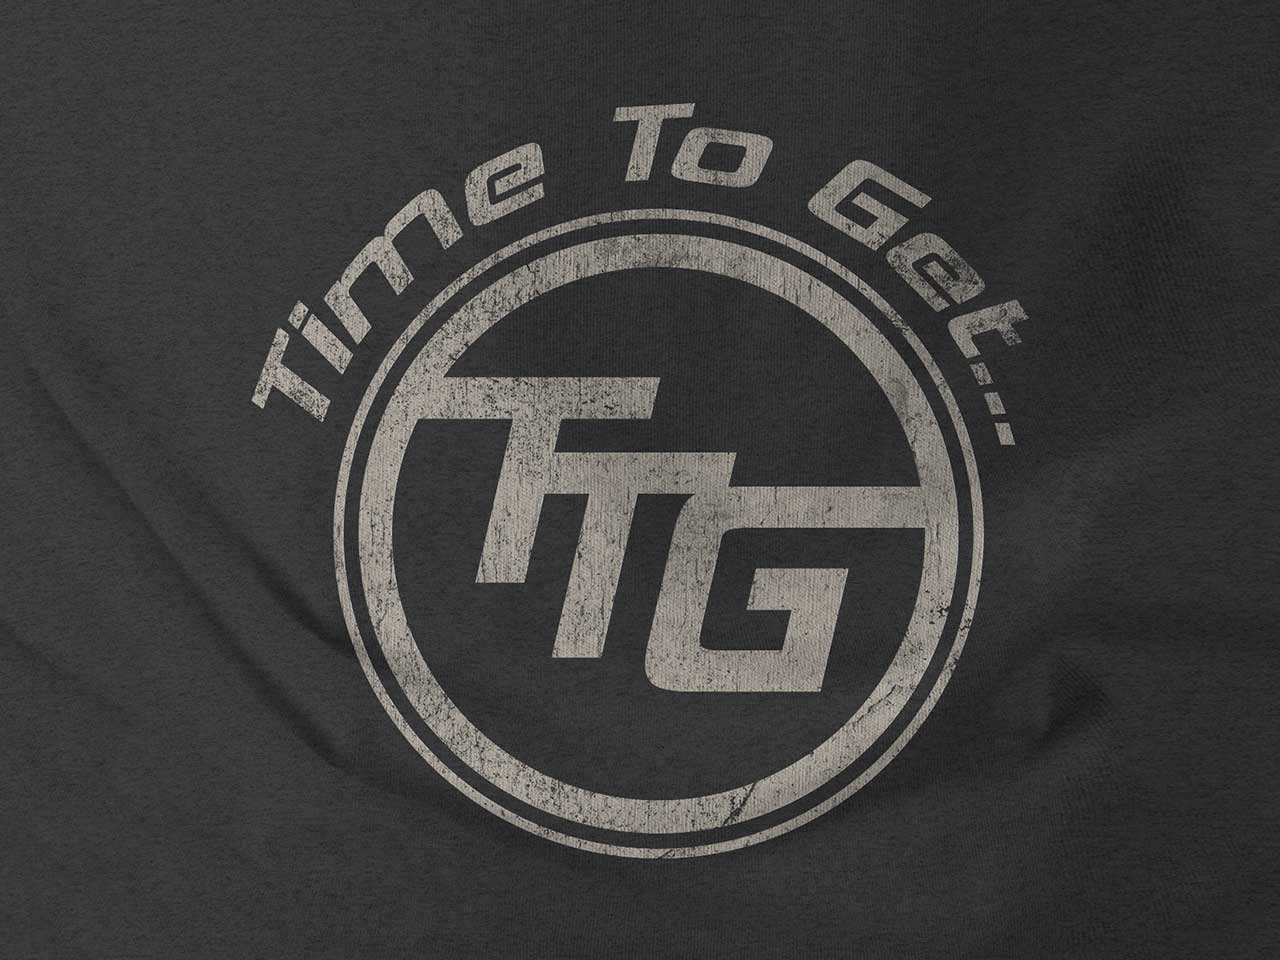 TIME TO GET... - Branding, apparel and social media design.